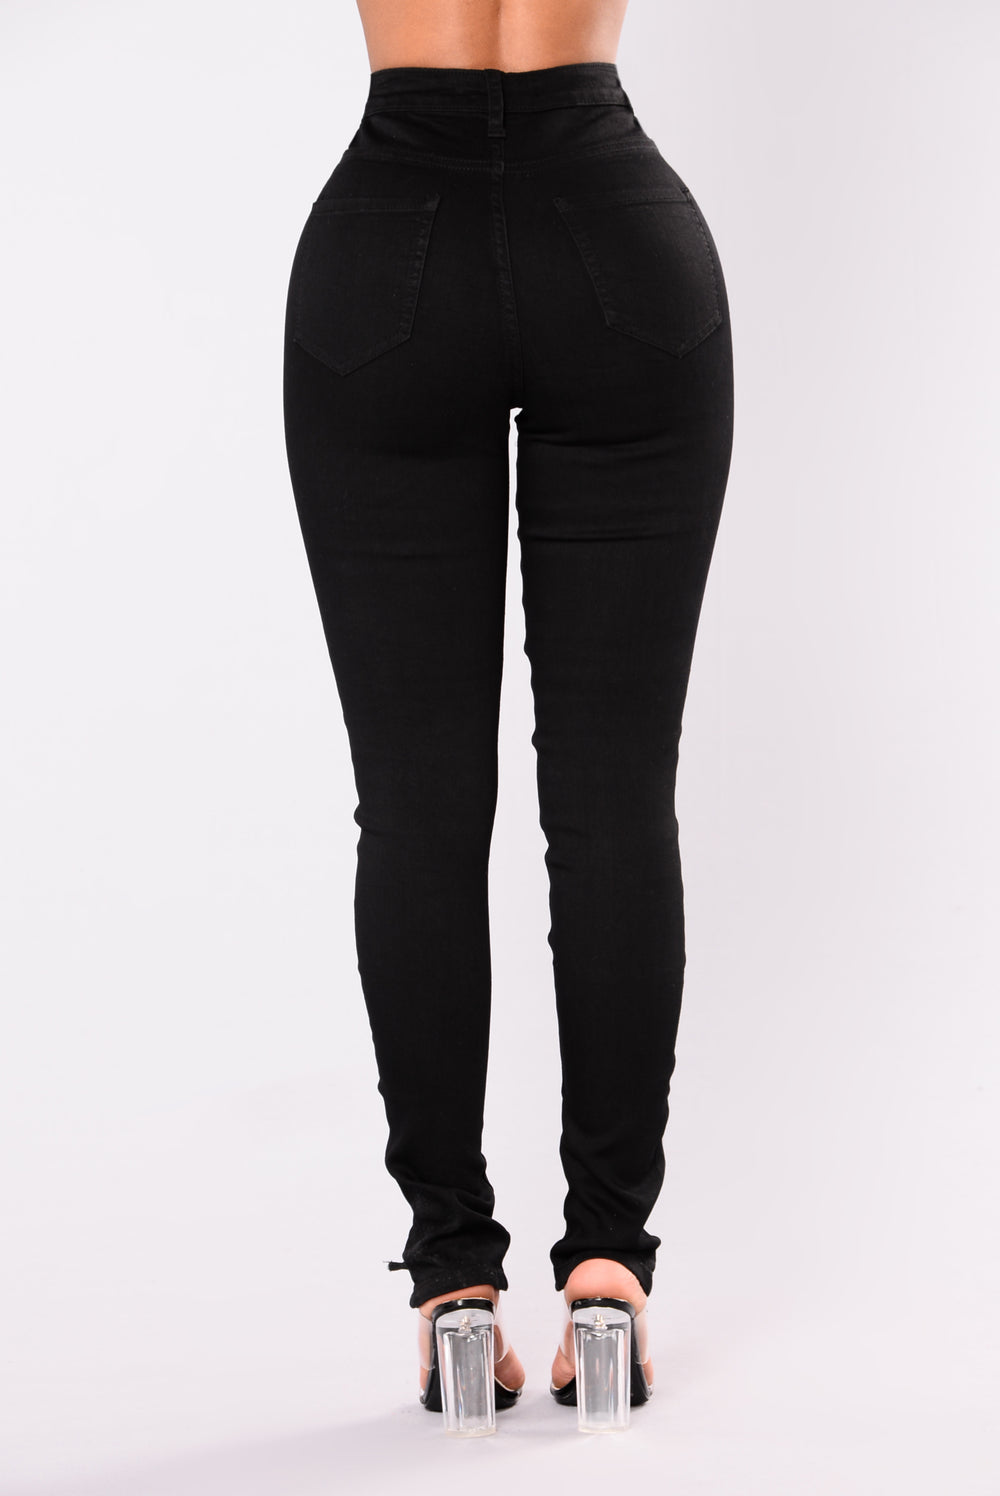 Kylee Lace Up Jeans - Black